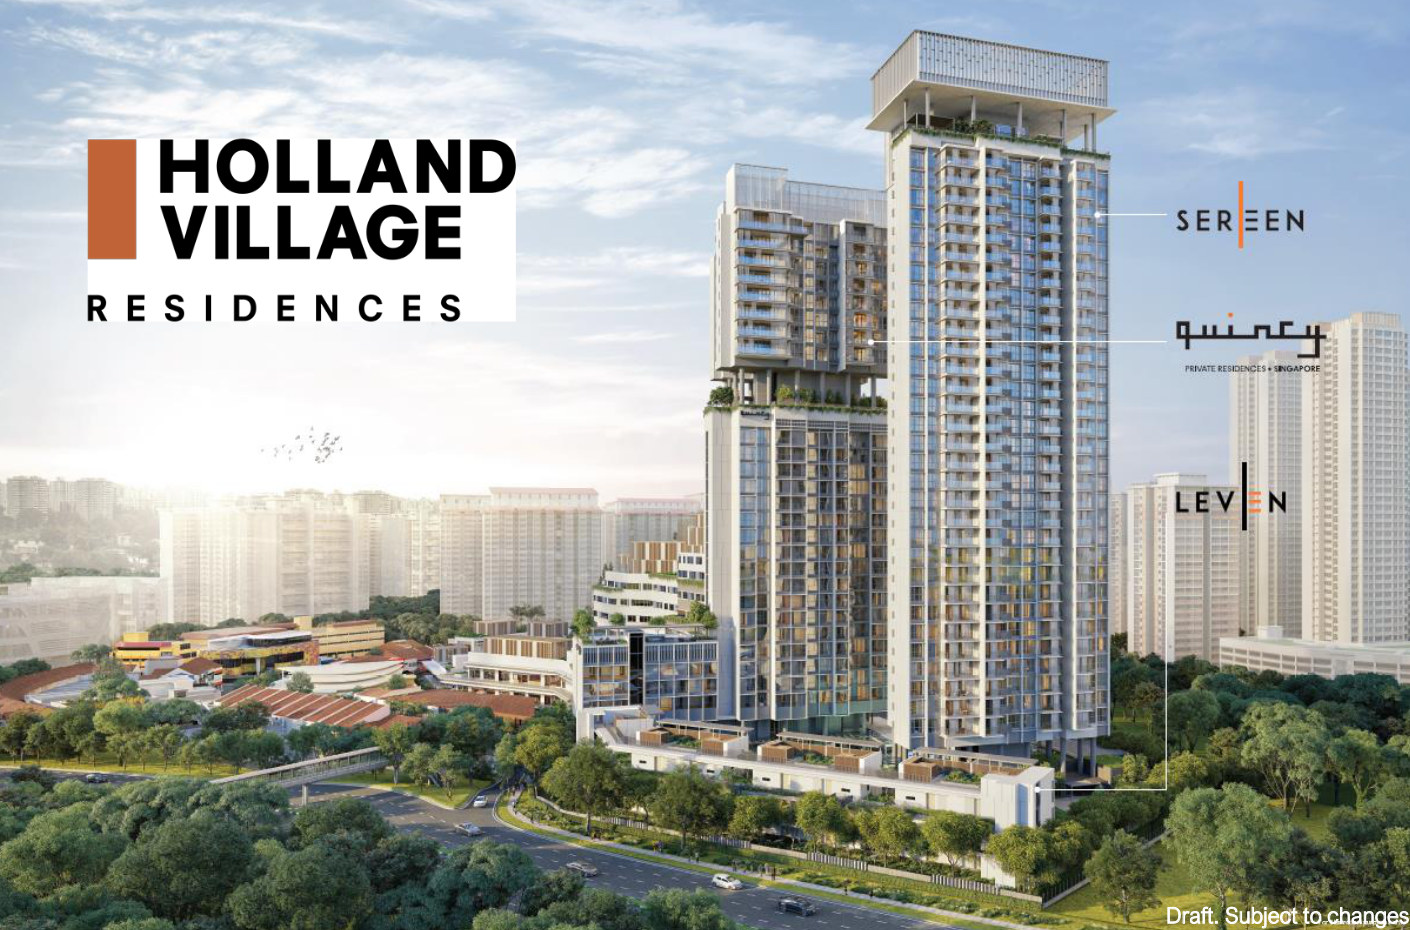 1 Holland Village Residences